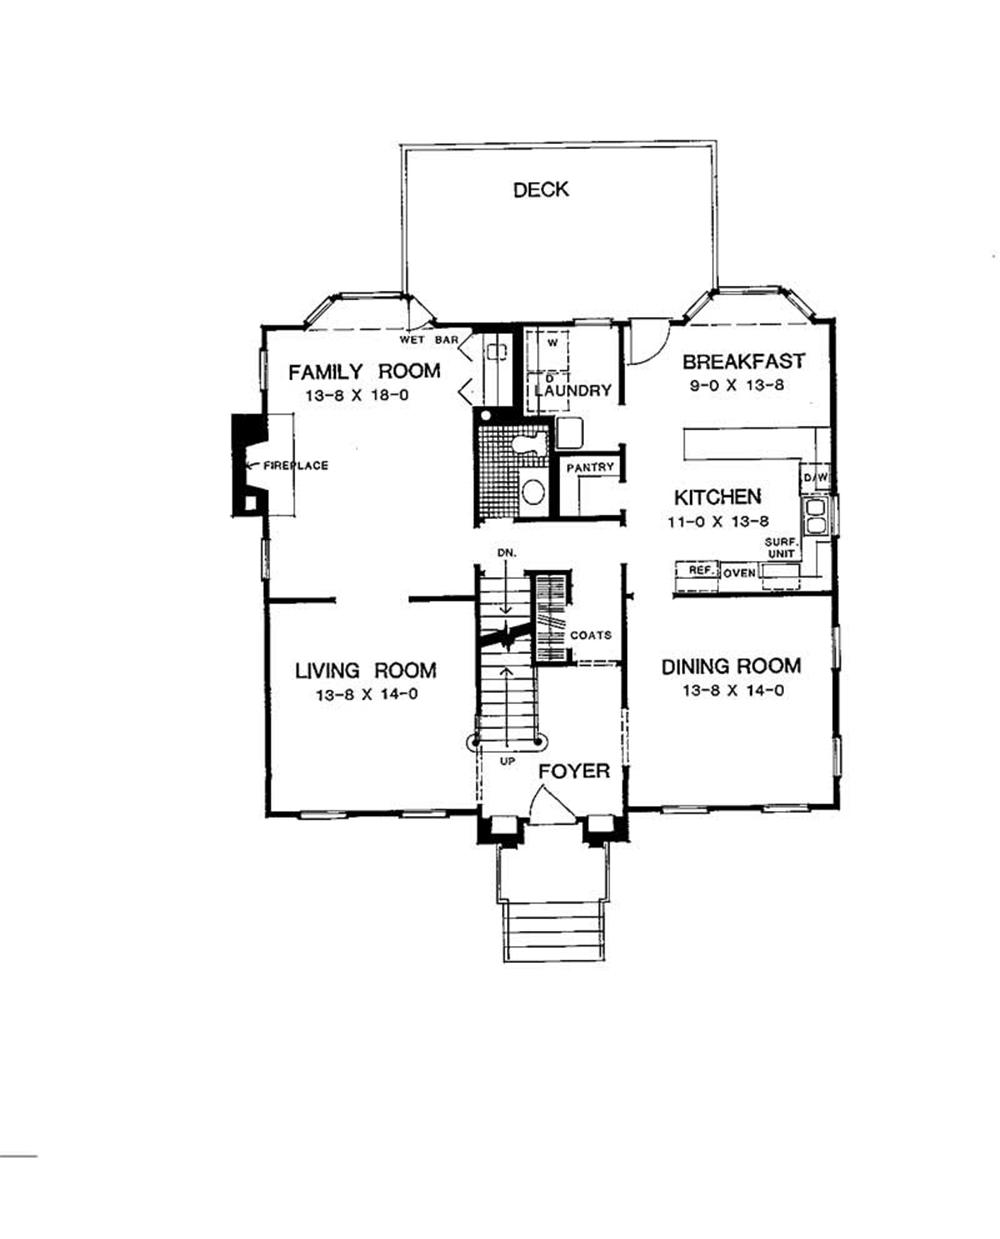 Large Images For House Plan 137 1260